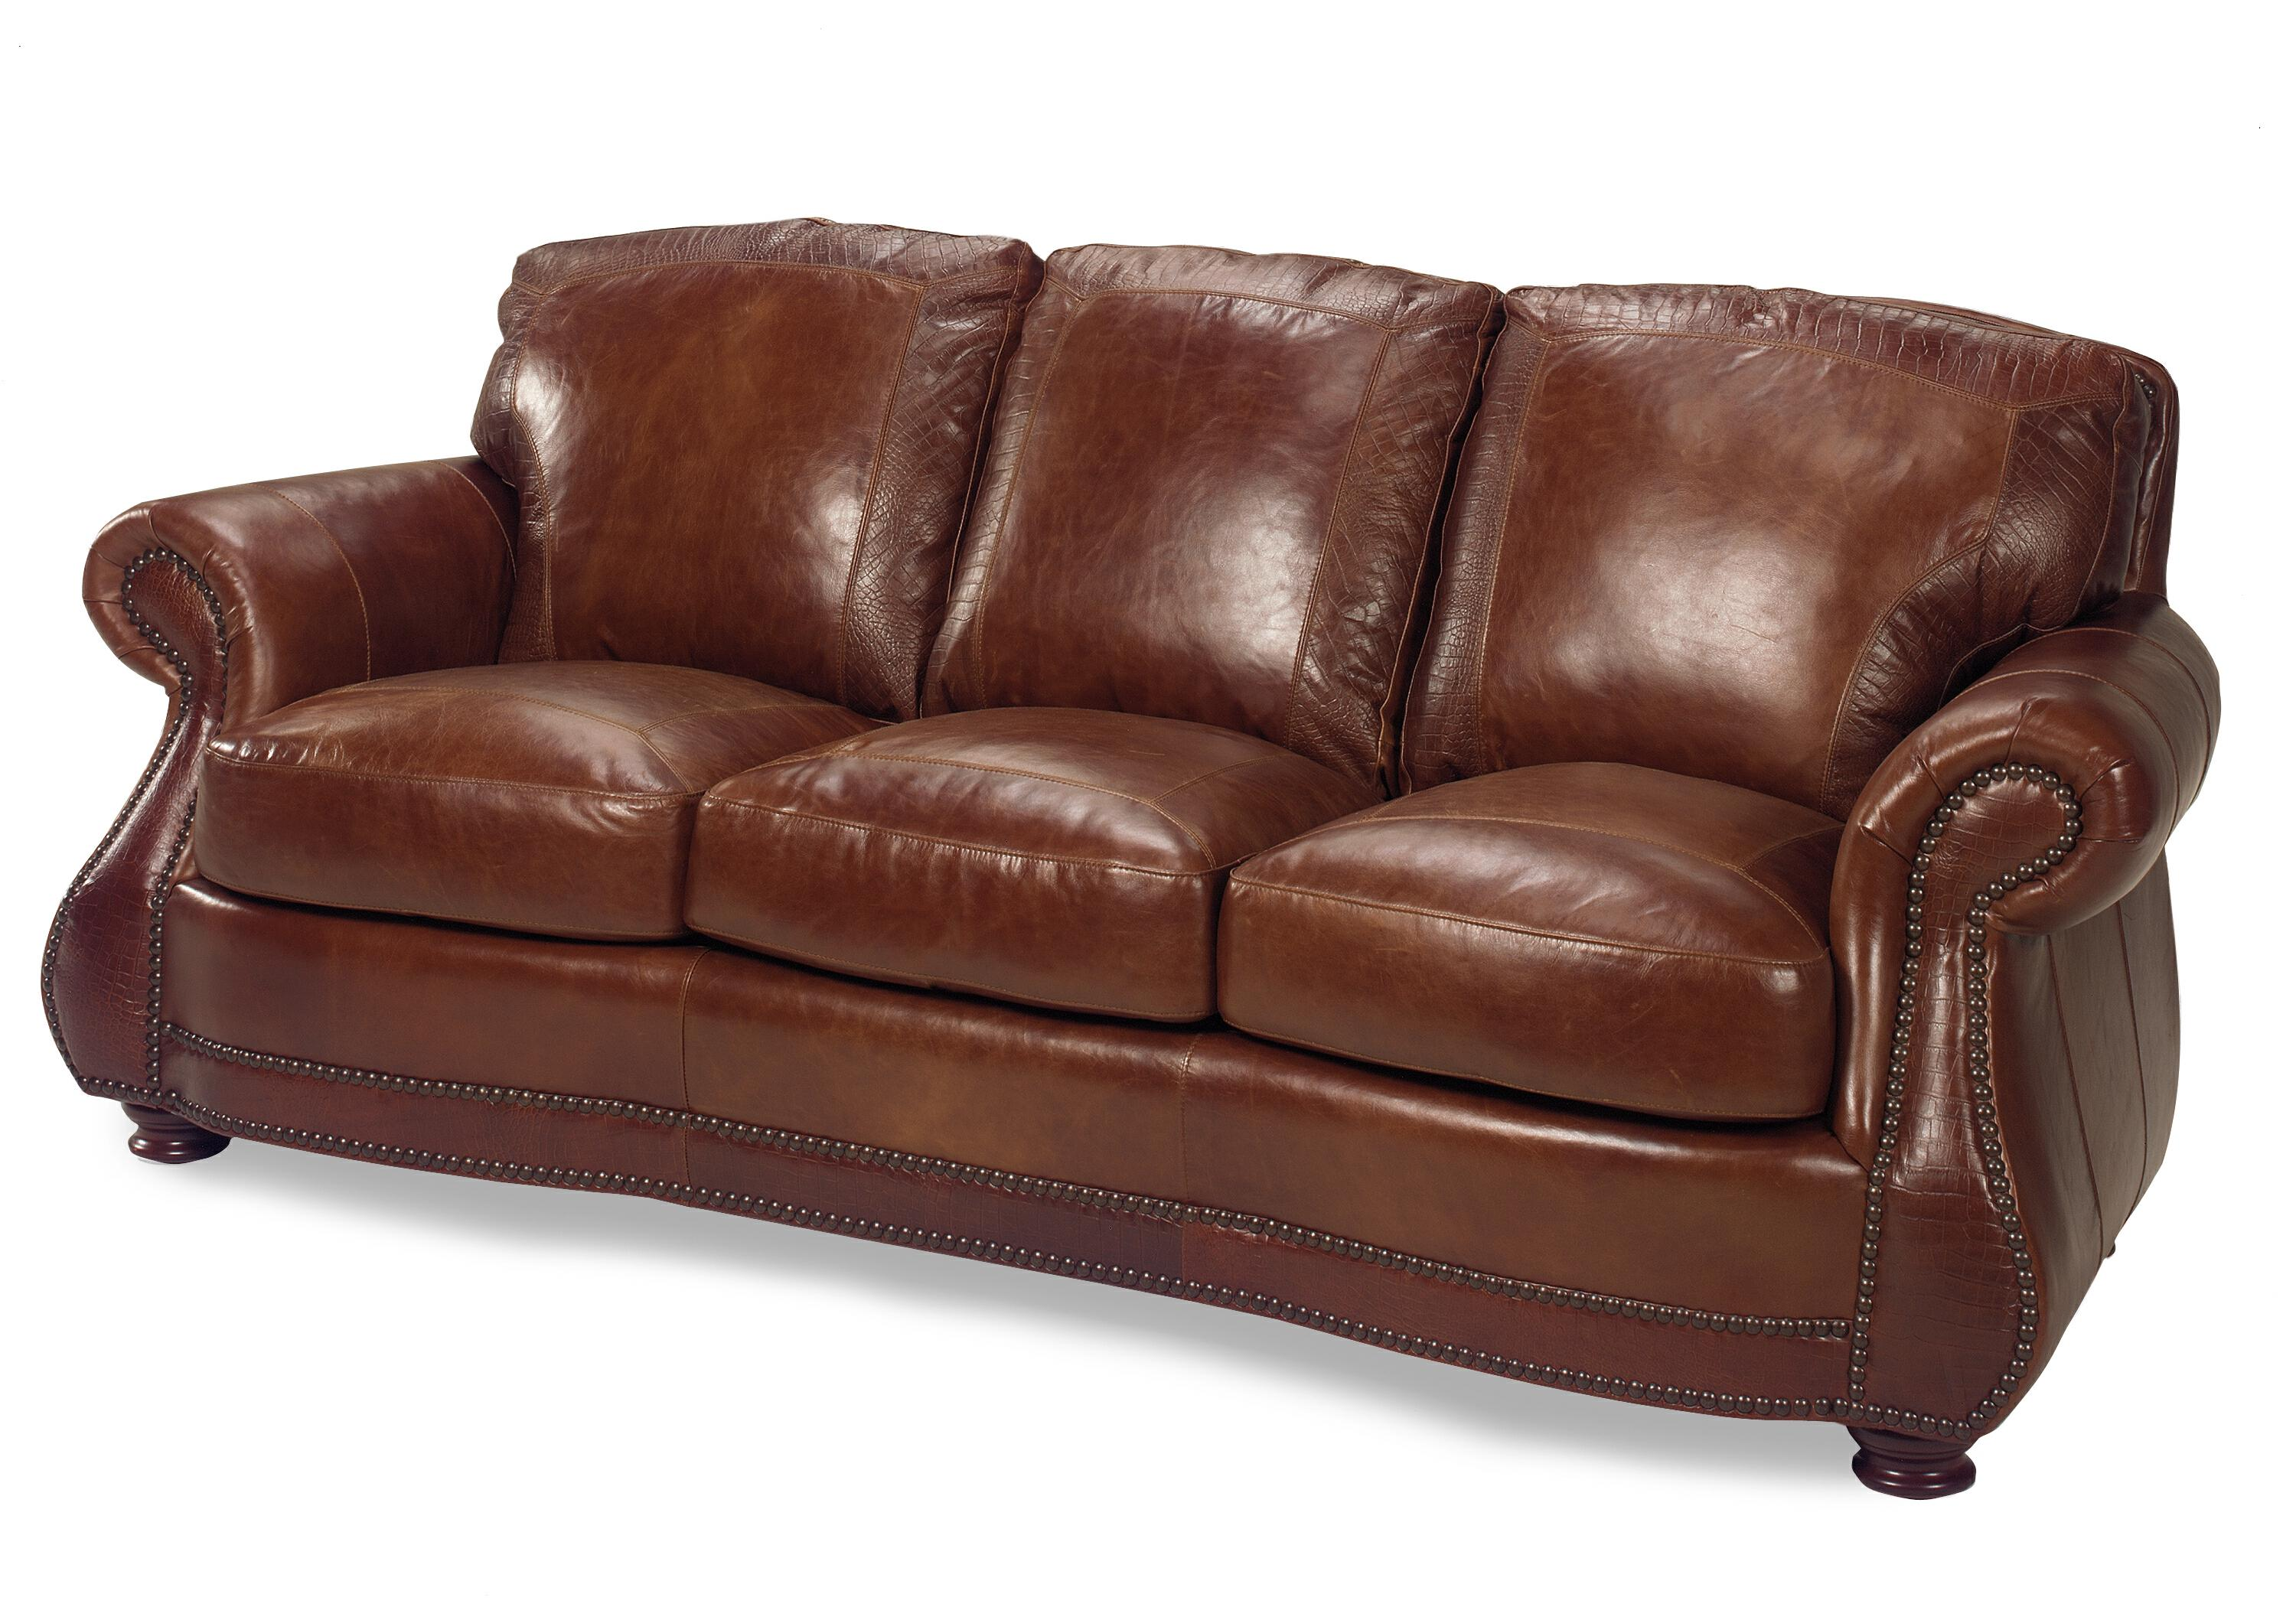 USA Premium Leather 9055 Traditional Roll Arm Sofa W Alligator Dream Home Furniture Sofas